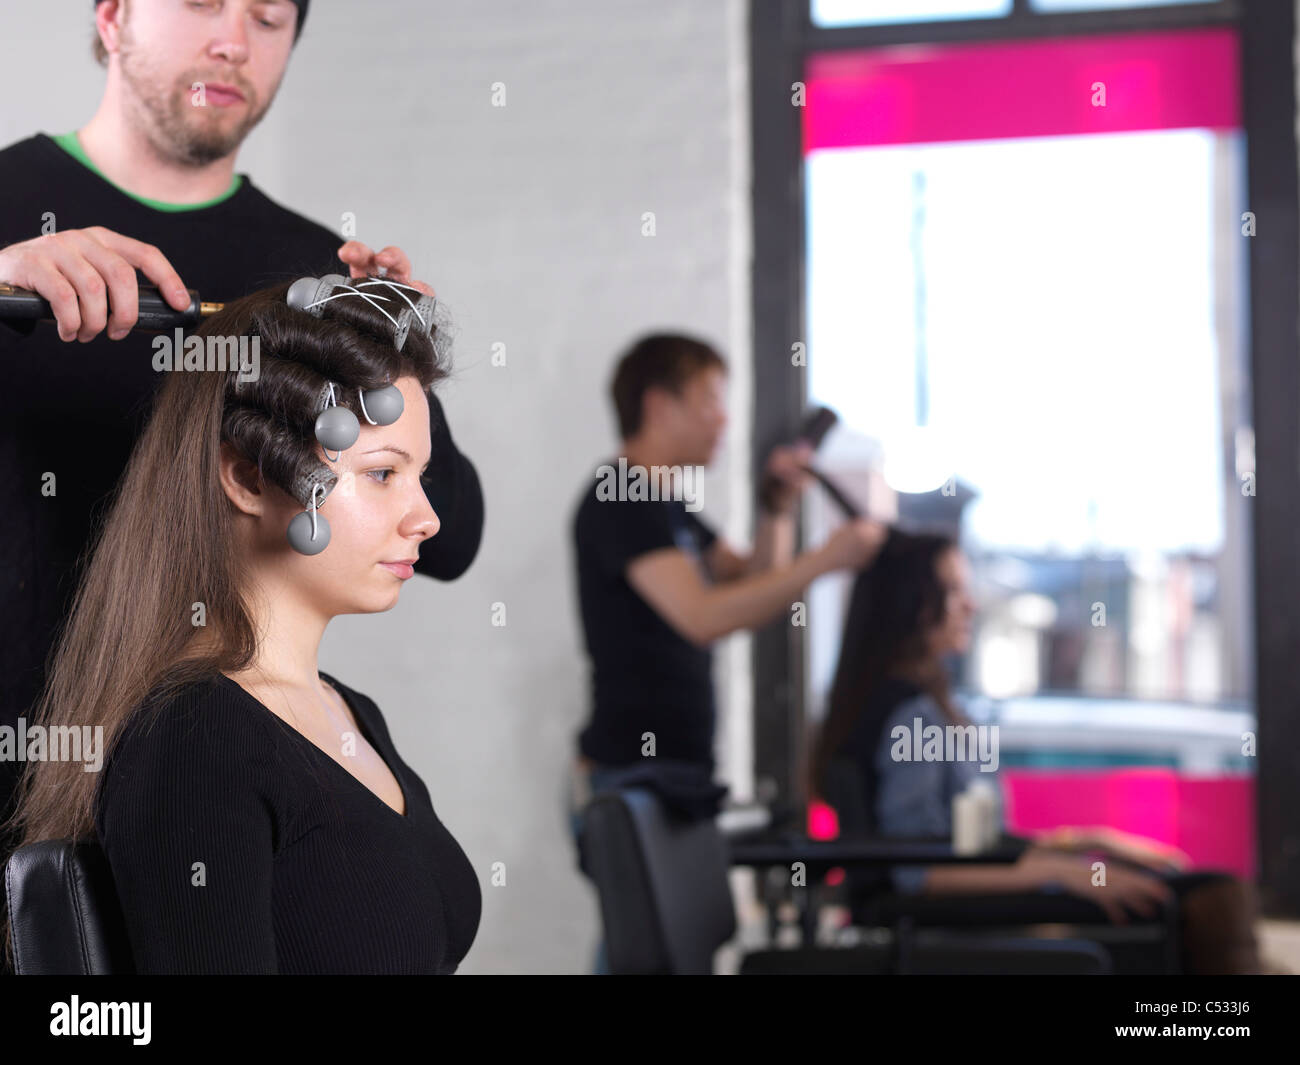 Young woman having her hair done by a hairstylist at a salon - Stock Image